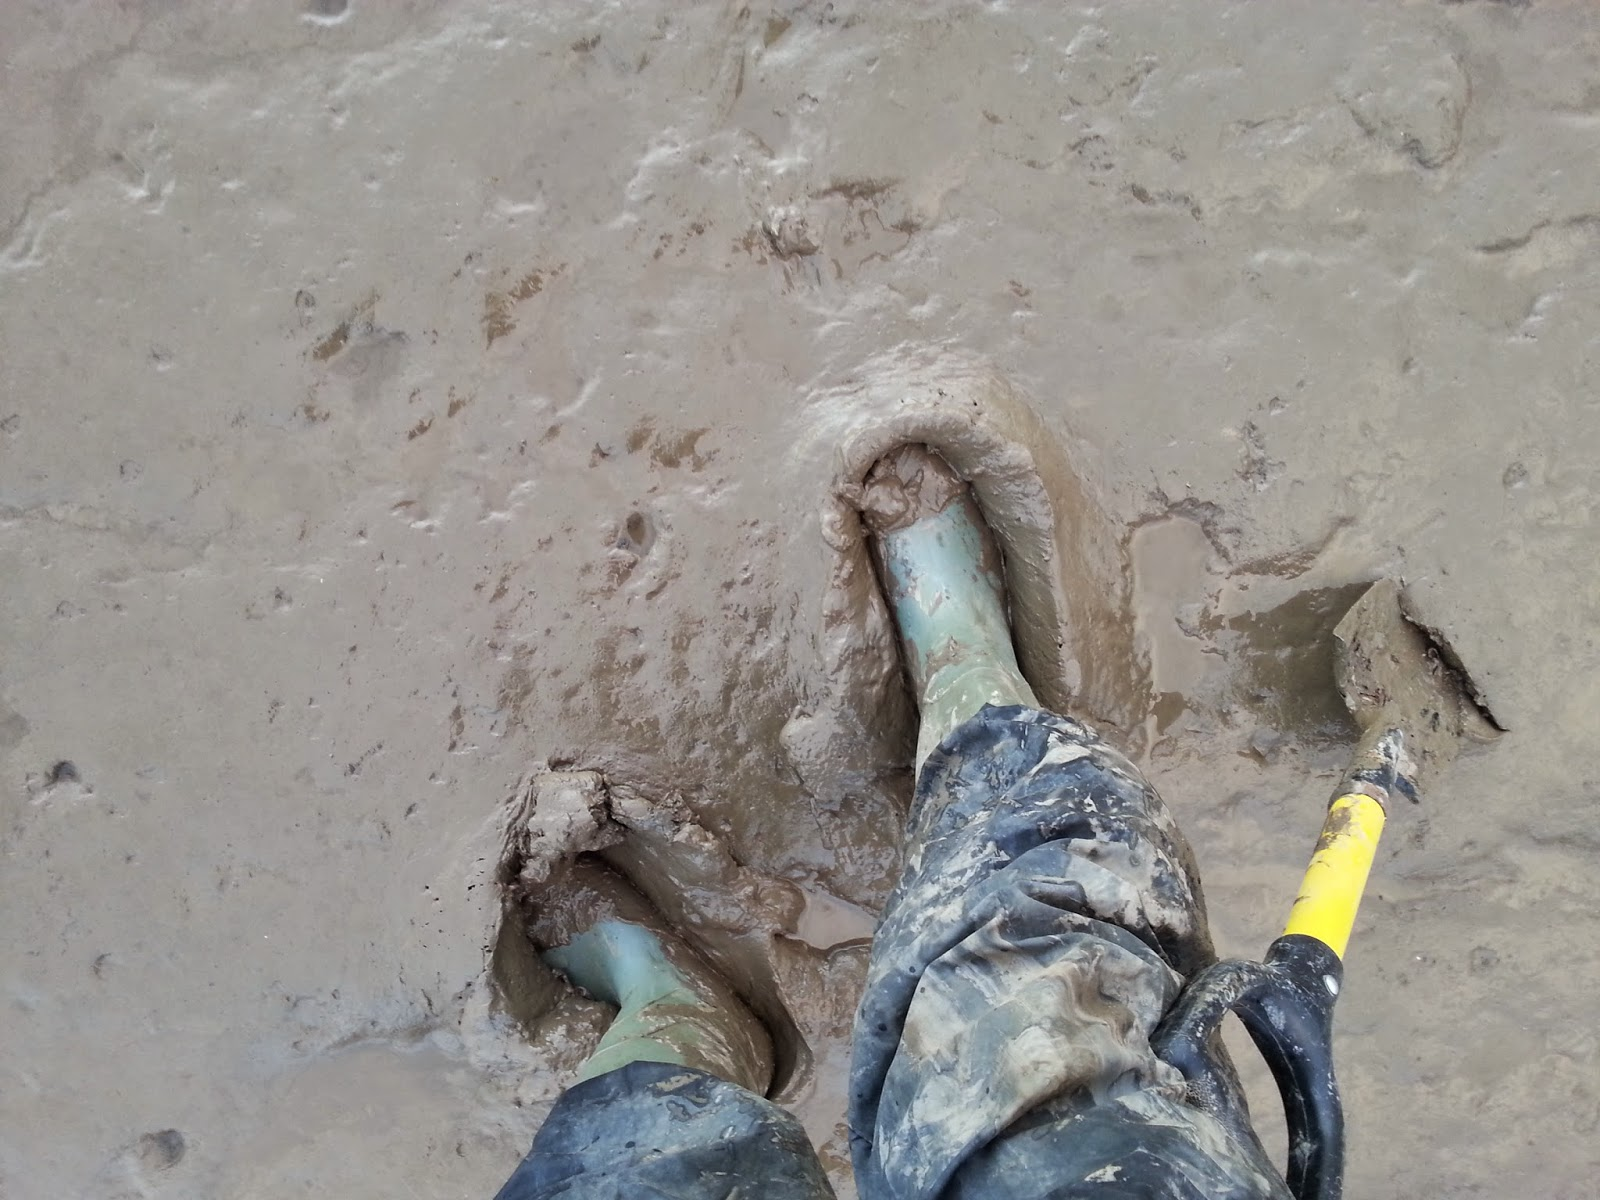 mud while metal detecting